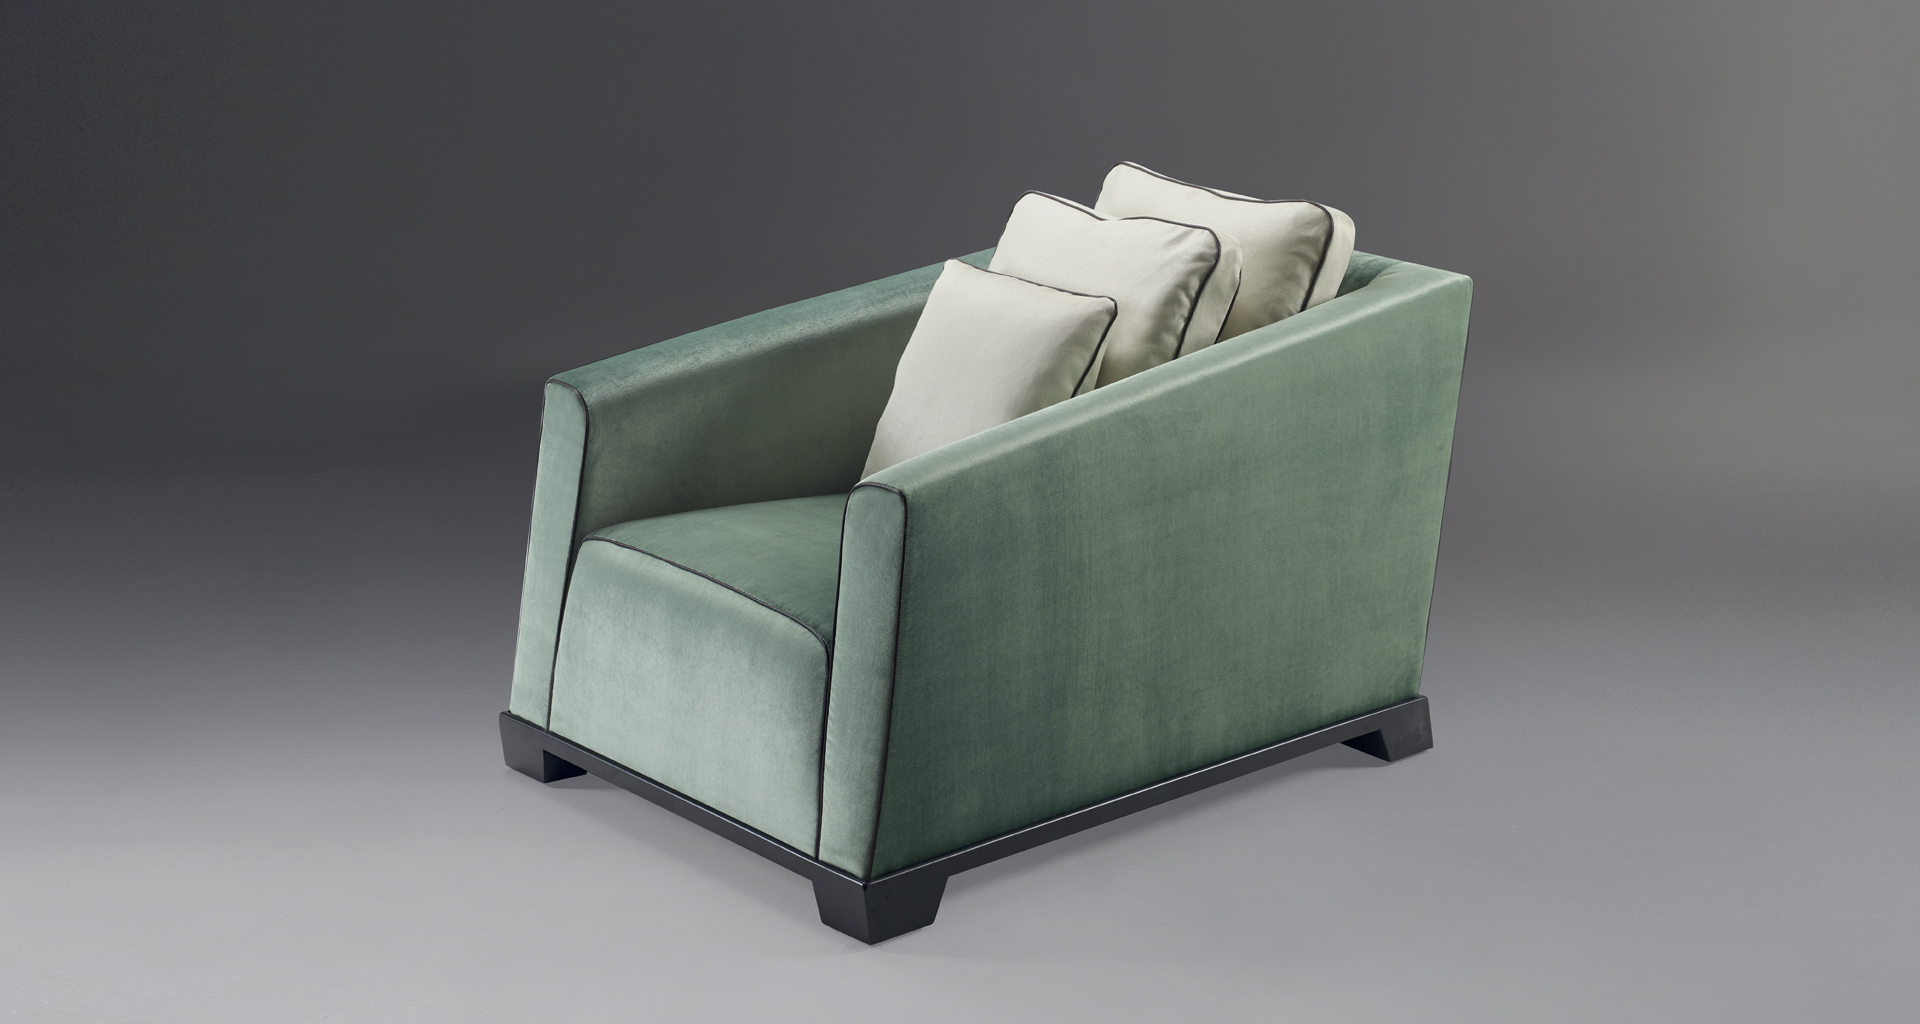 Martini is an armchair covered in fabric or leather with bronze feet, from Promemoria's catalogue | Promemoria